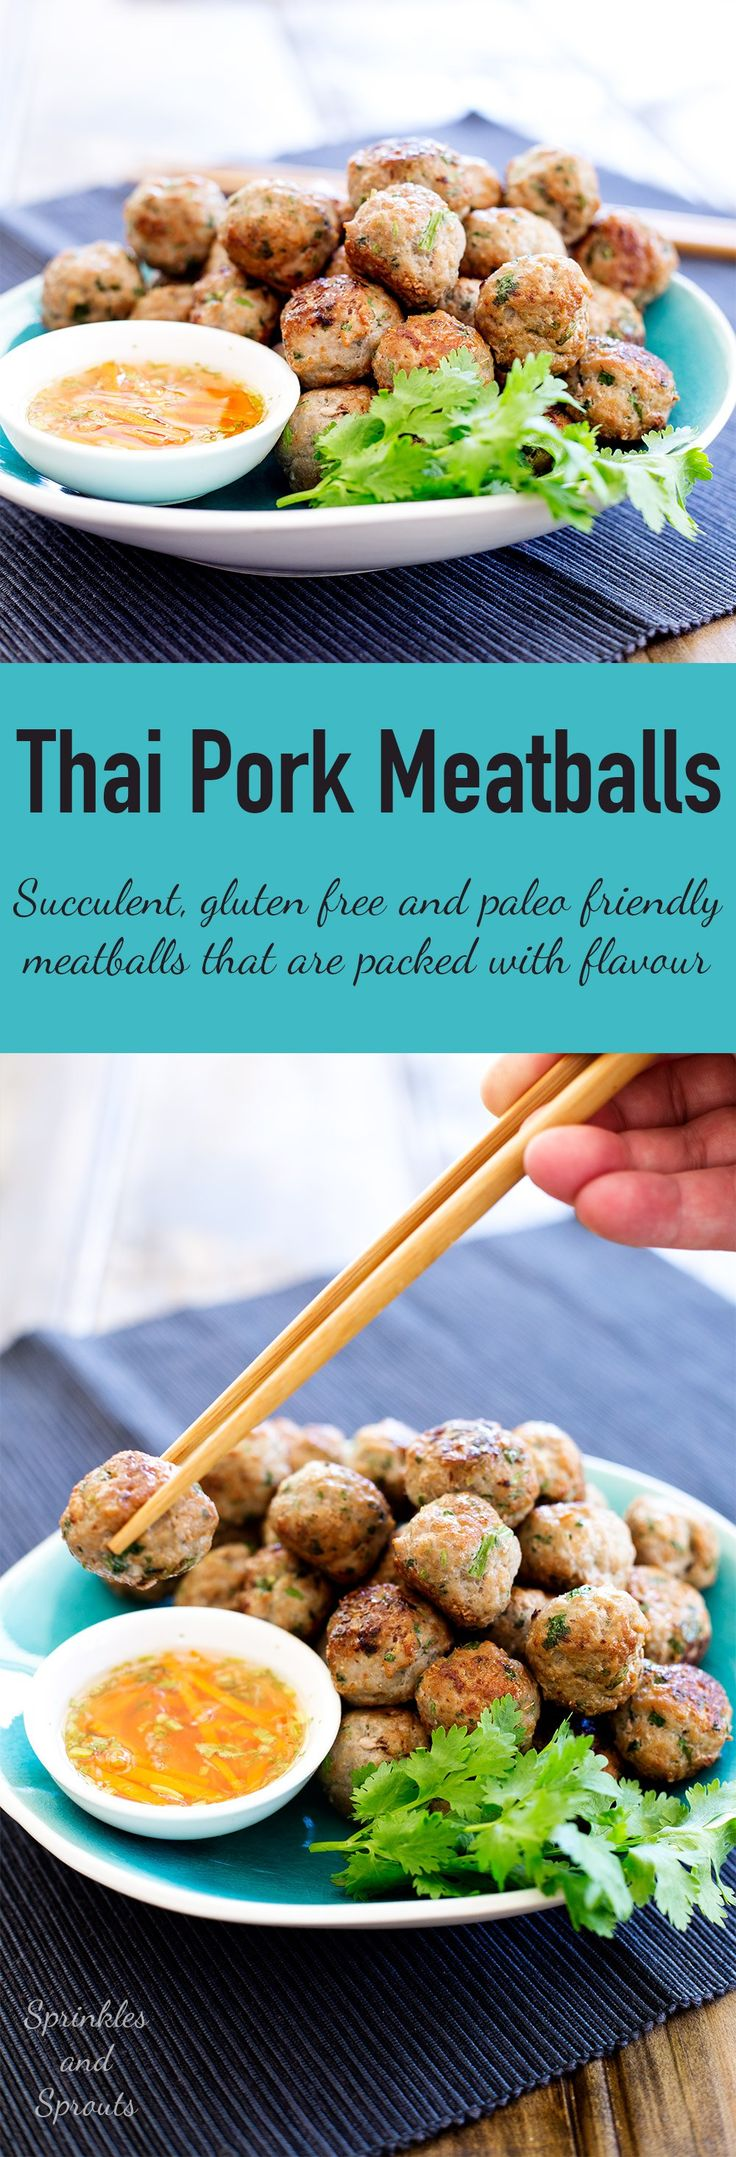 201 best Pork Recipes images on Pinterest   Delicious recipes ...